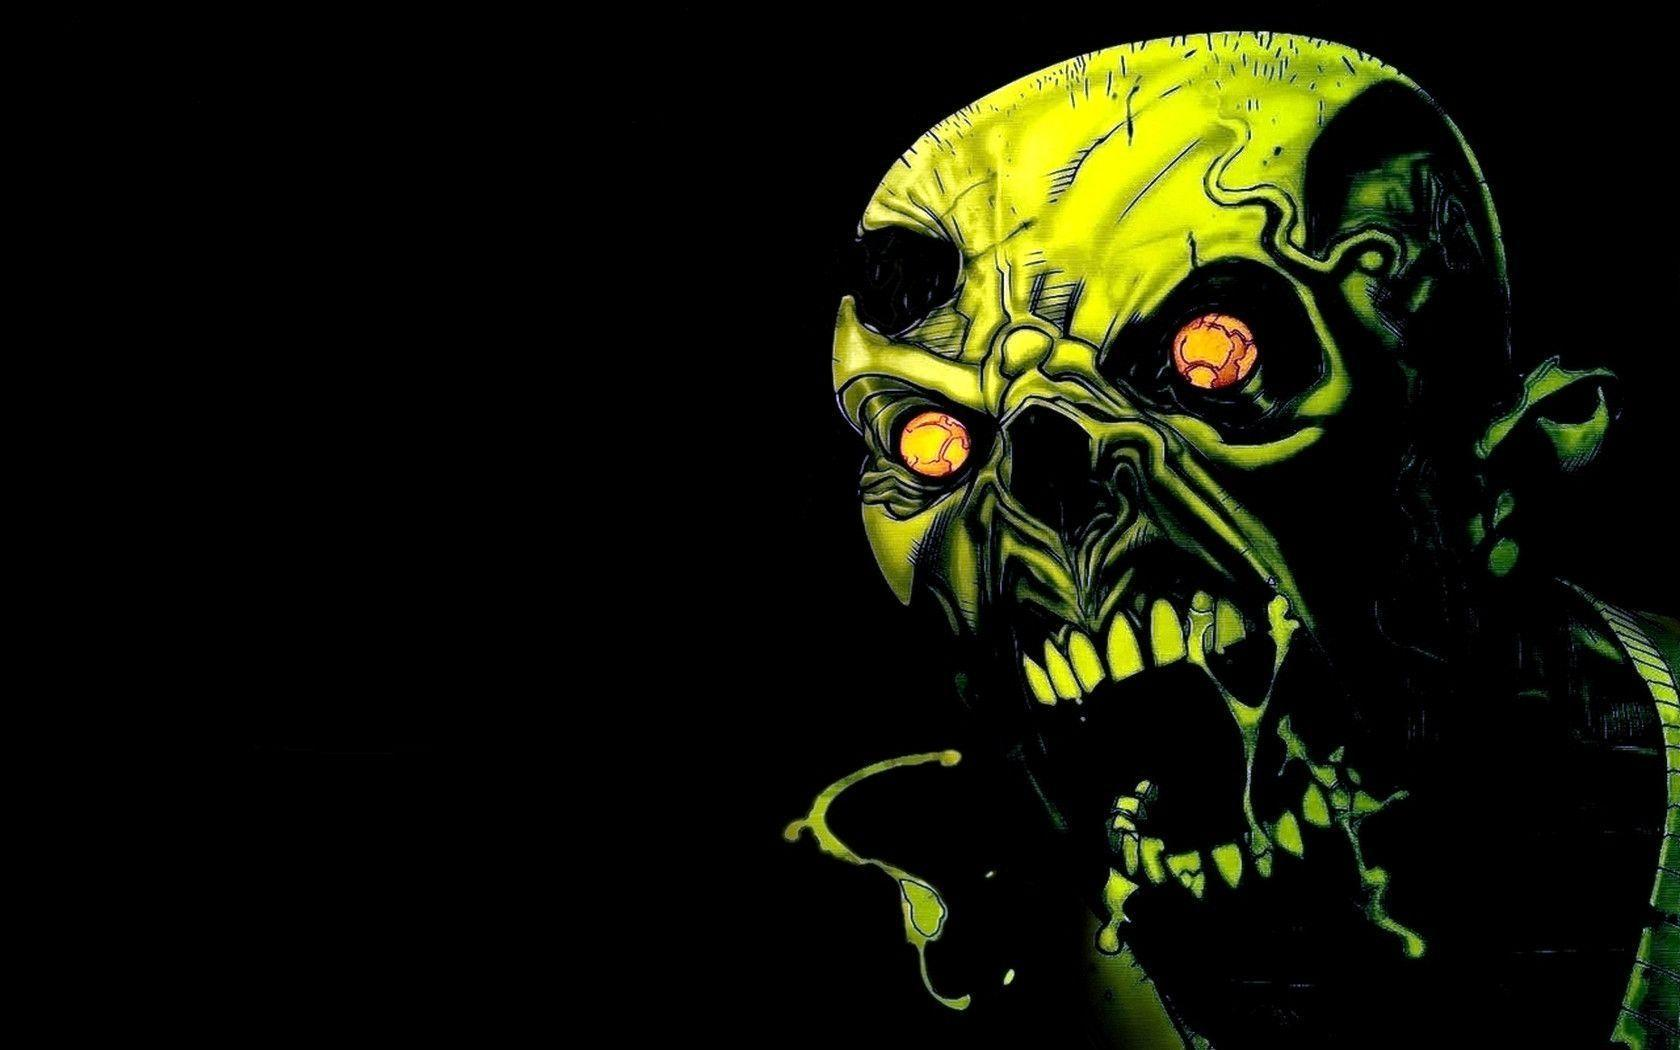 Zombie Terror HD Pictures, Zombie Wallpapers – Wallpapers Site ...